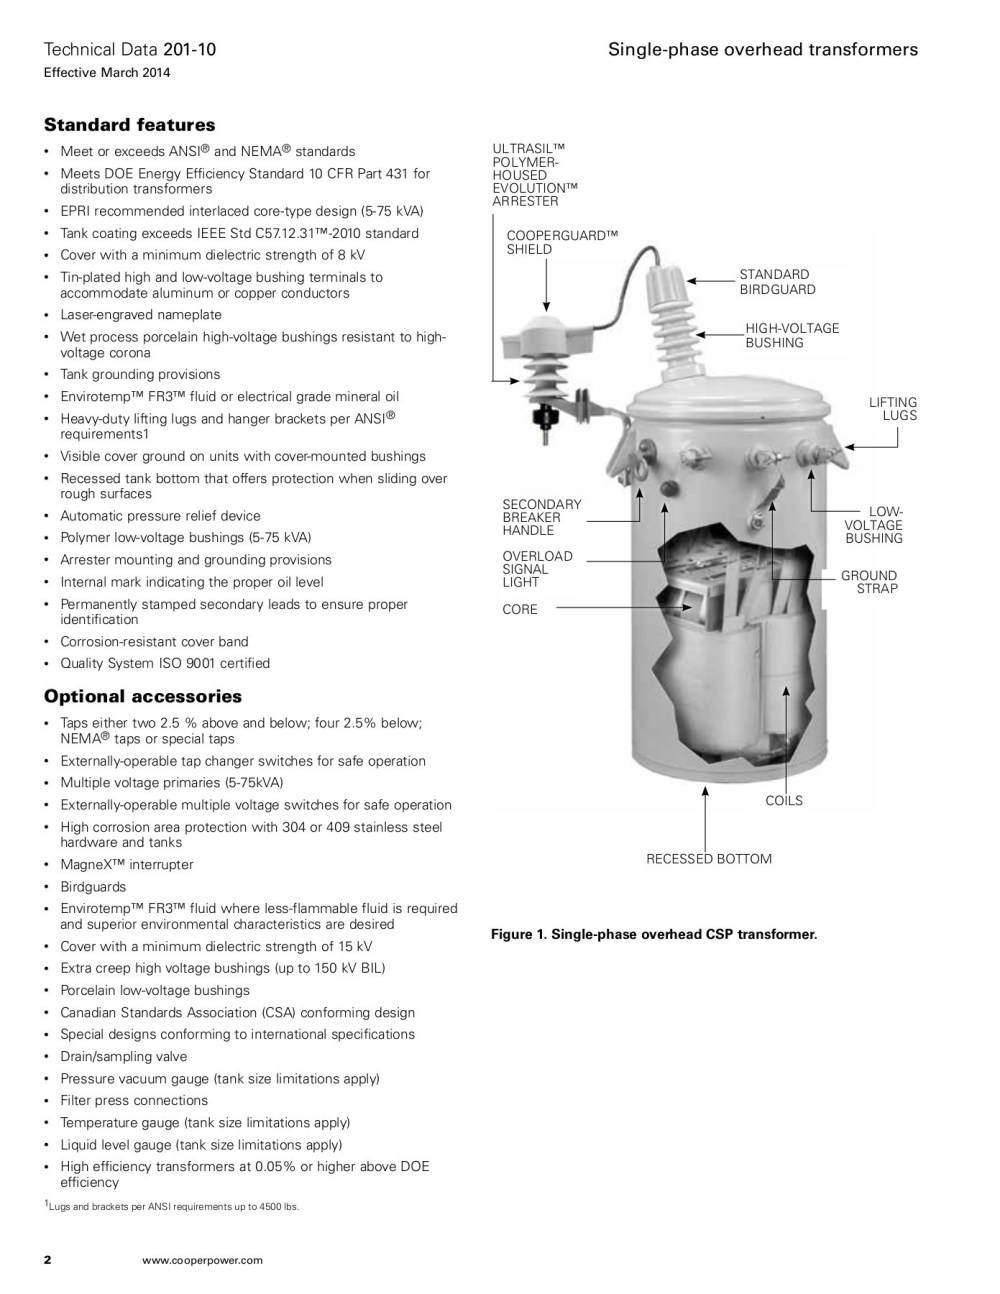 medium resolution of 201 10 single phase overhead transformers pages 1 4 text version fliphtml5